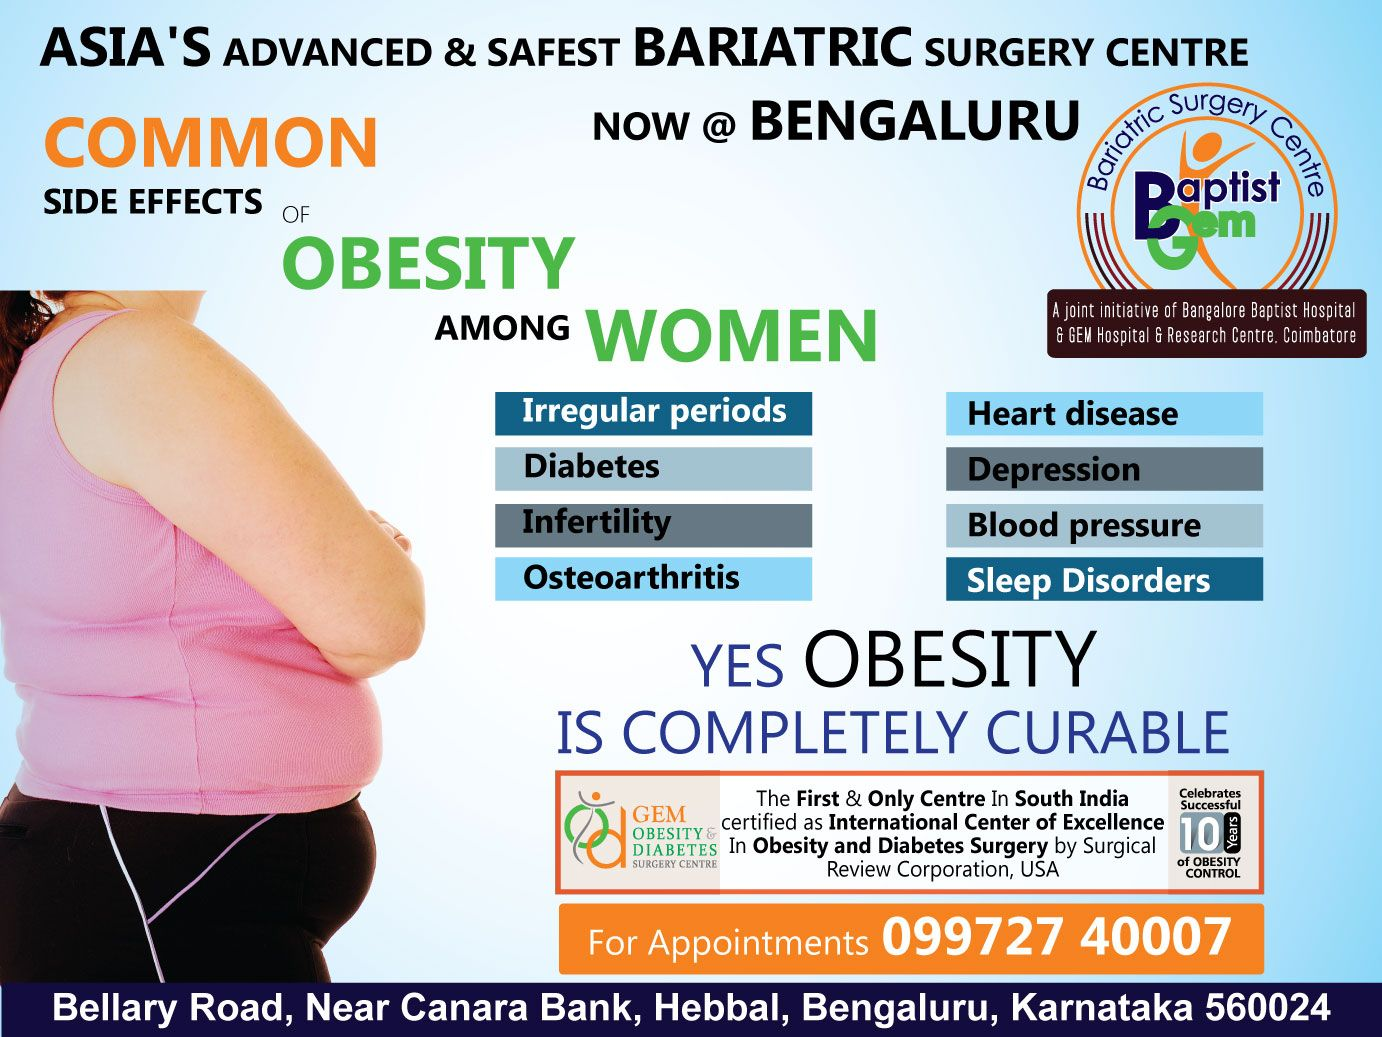 Surgery for obesity in bangalore dating. Surgery for obesity in bangalore dating.